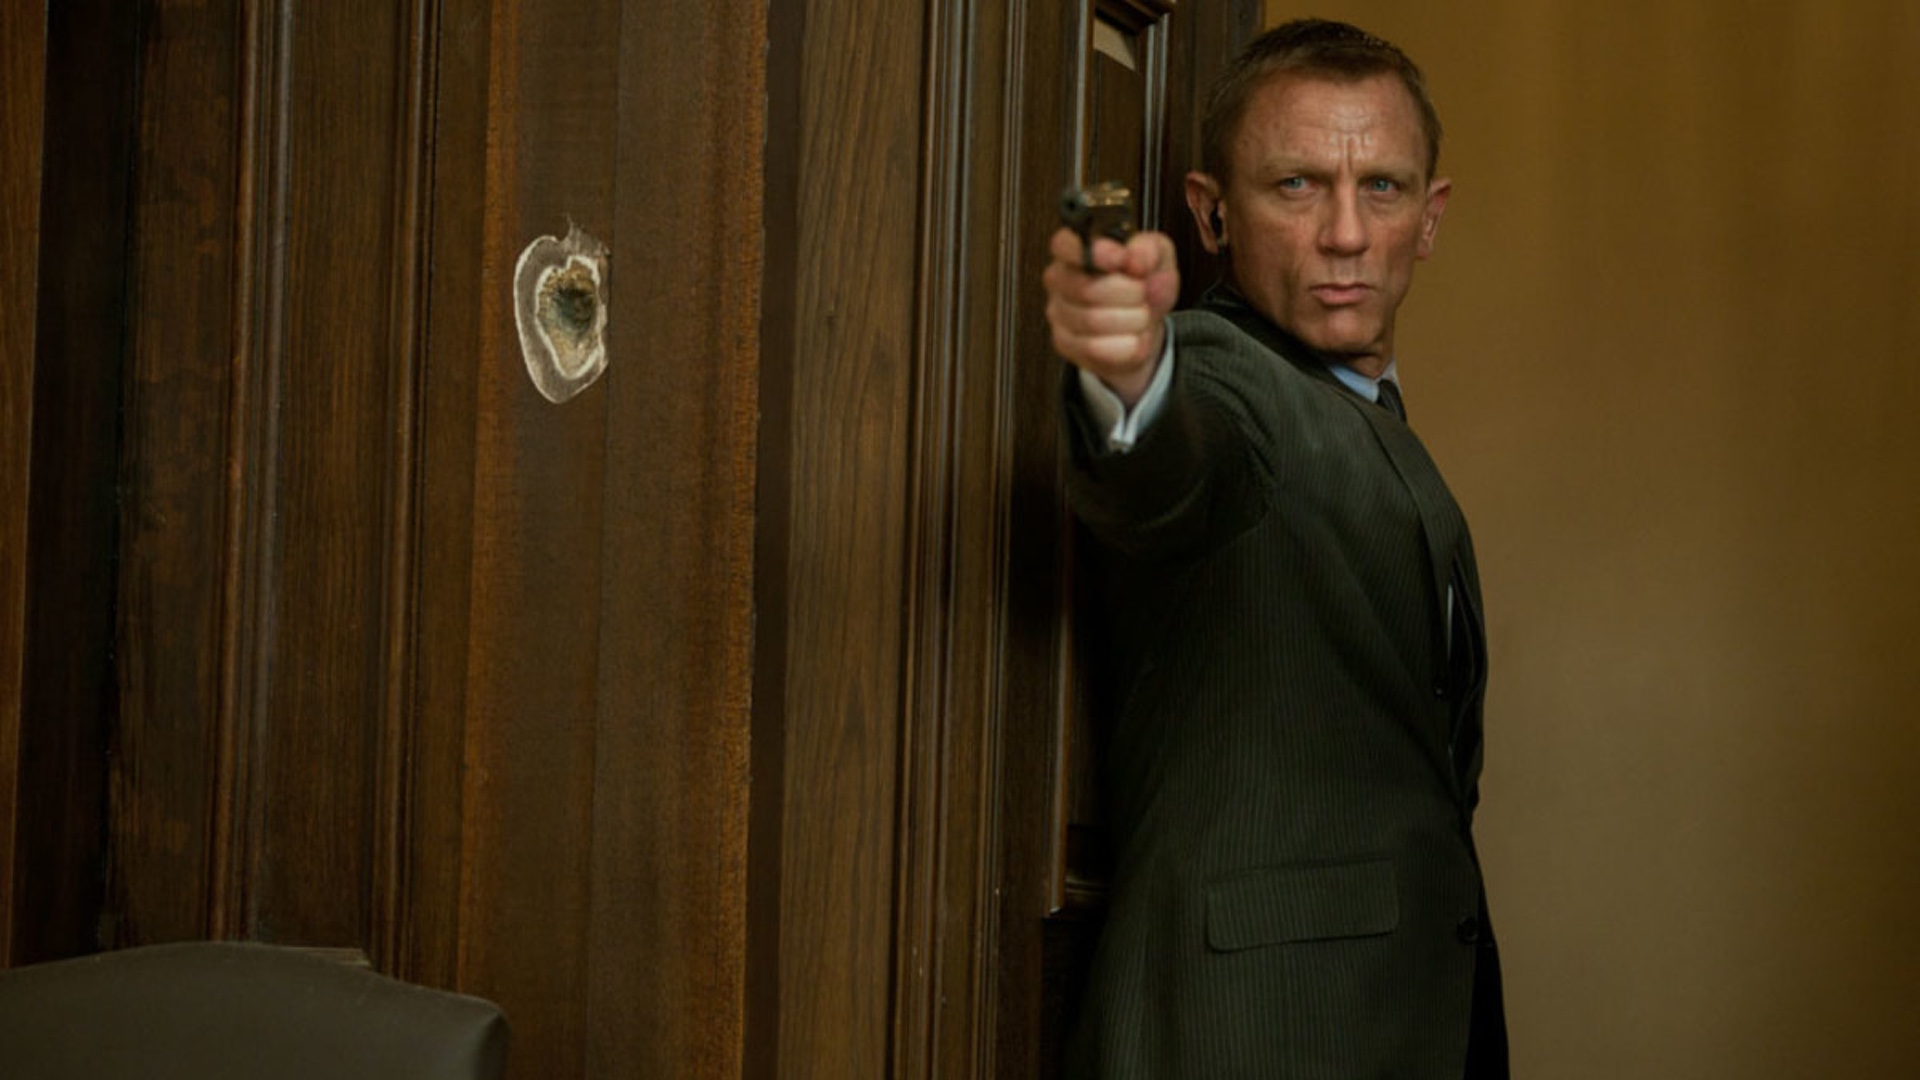 bond-25-goes-back-to-the-drawing-board-and-the-release-date-will-be-pushed-back-social.jpg